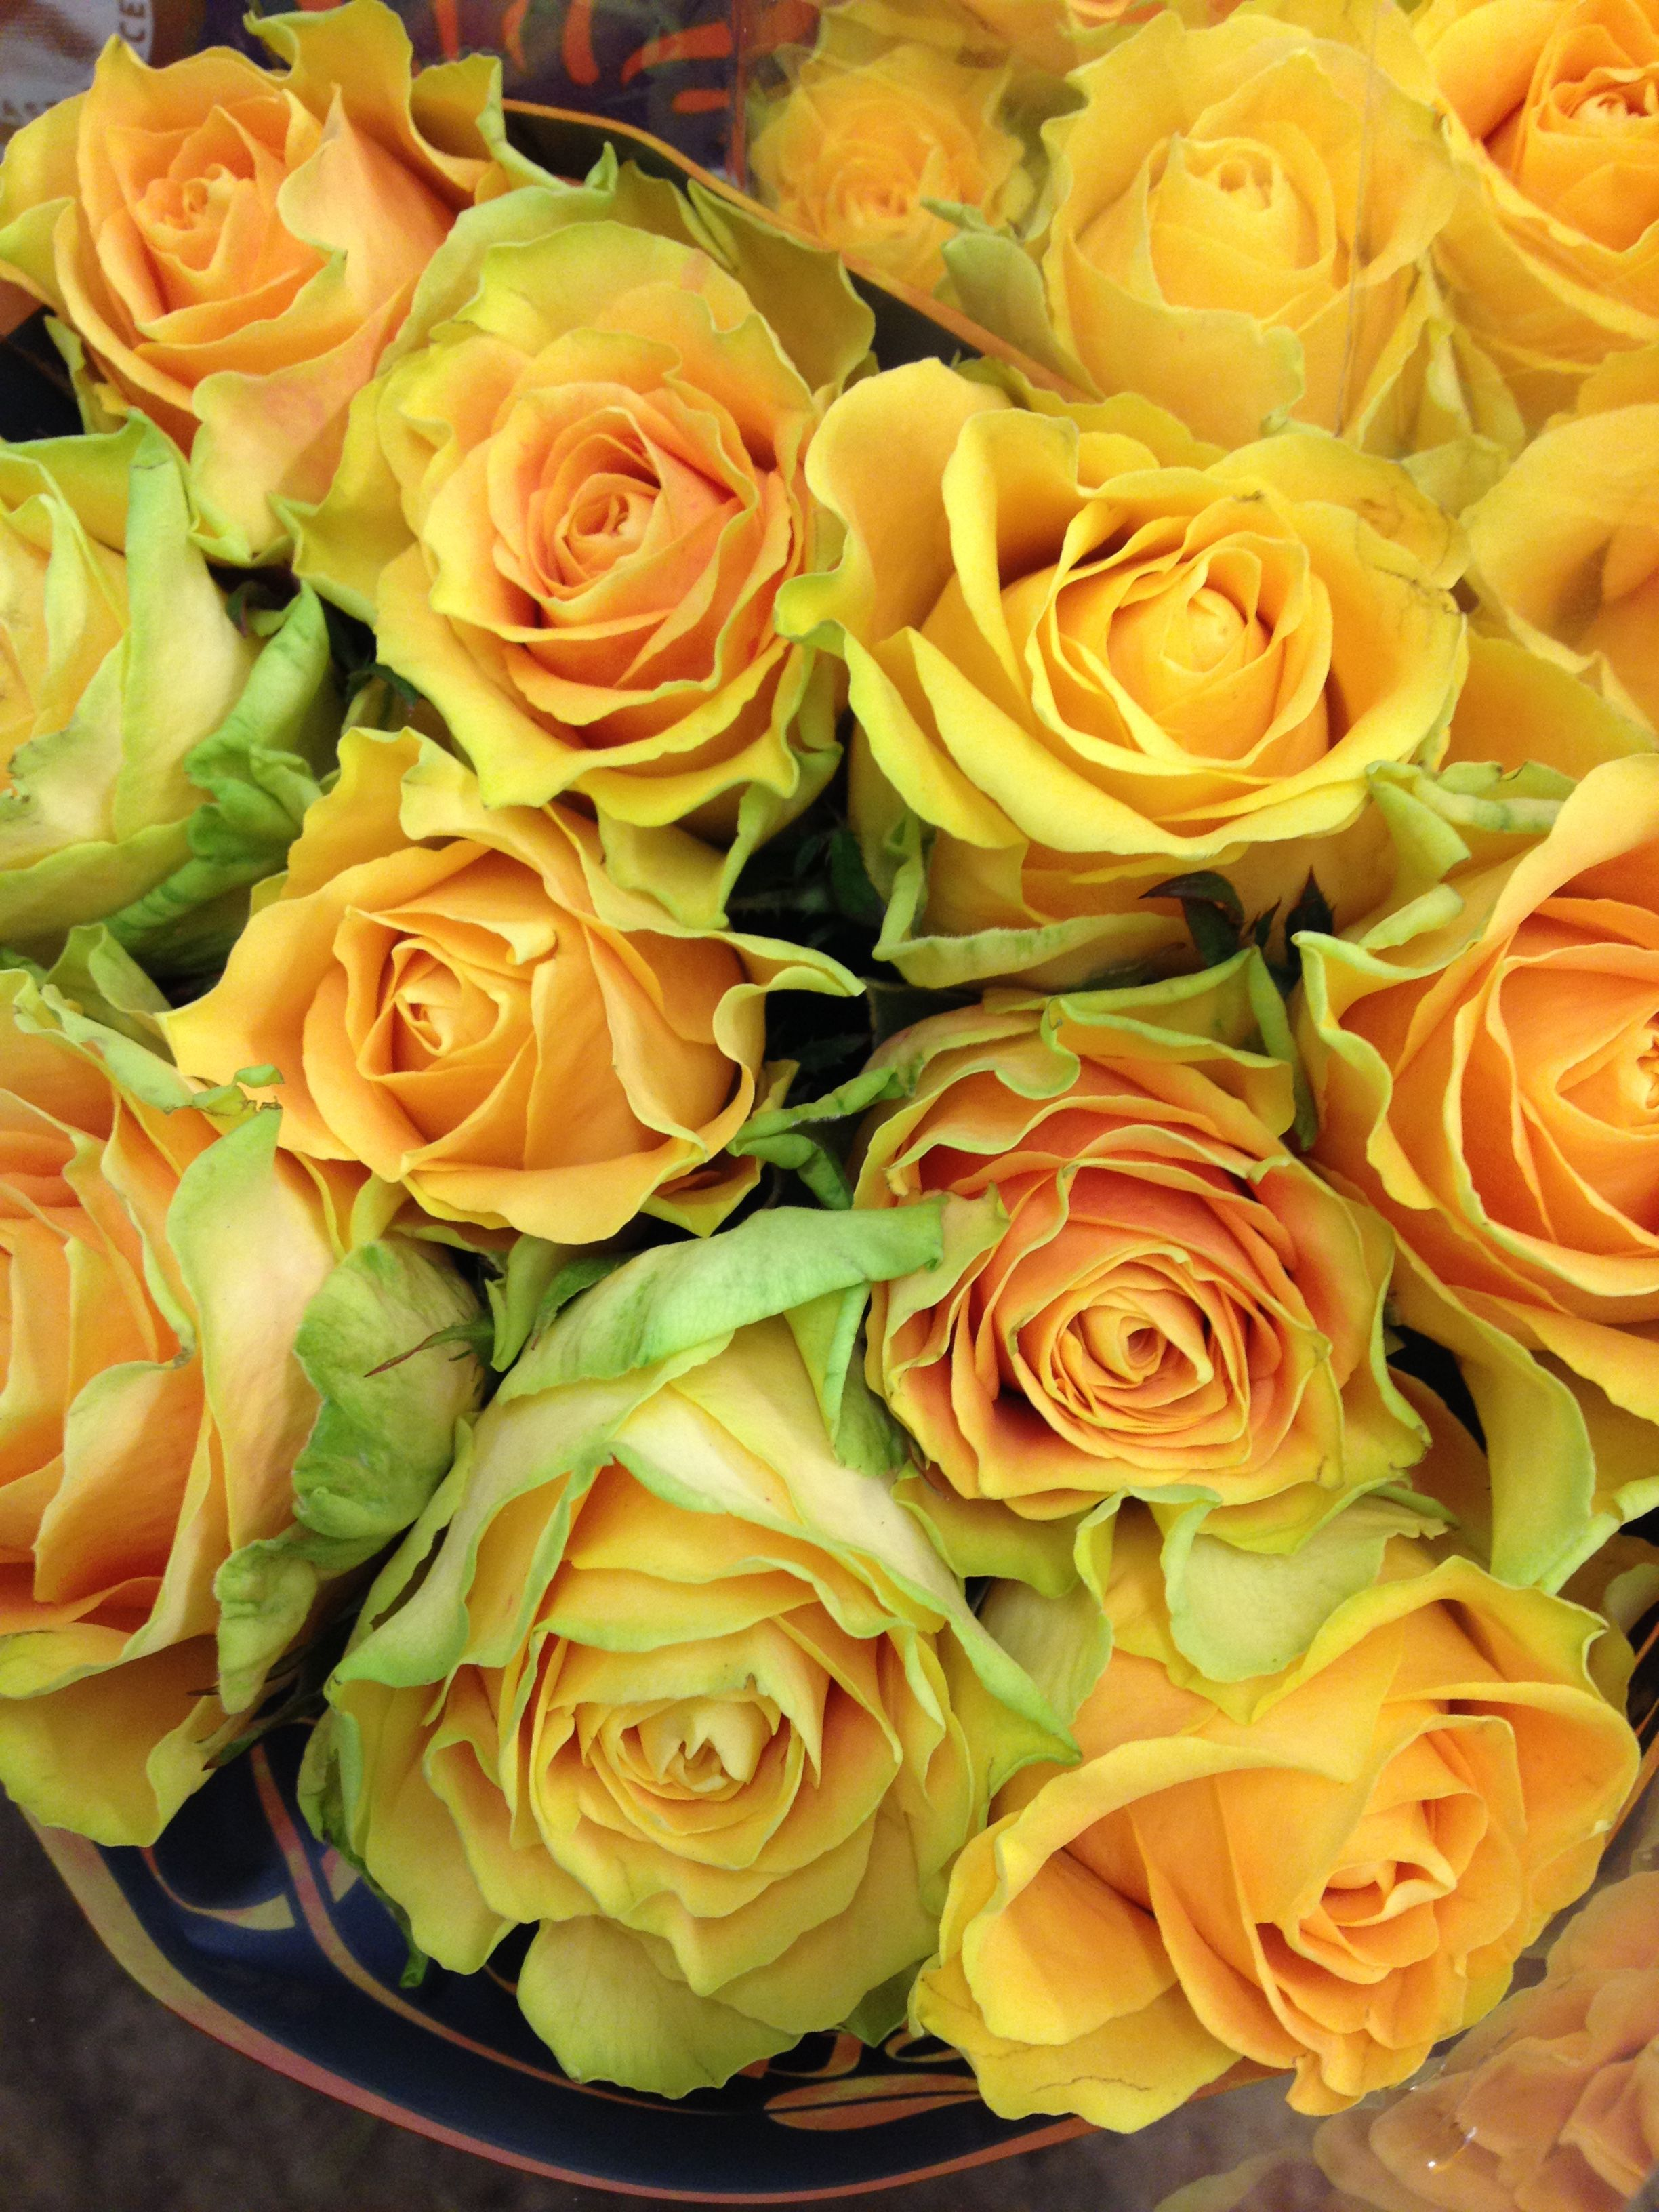 Rose Yellow Cubald In Bunches Of 20 Stems From The